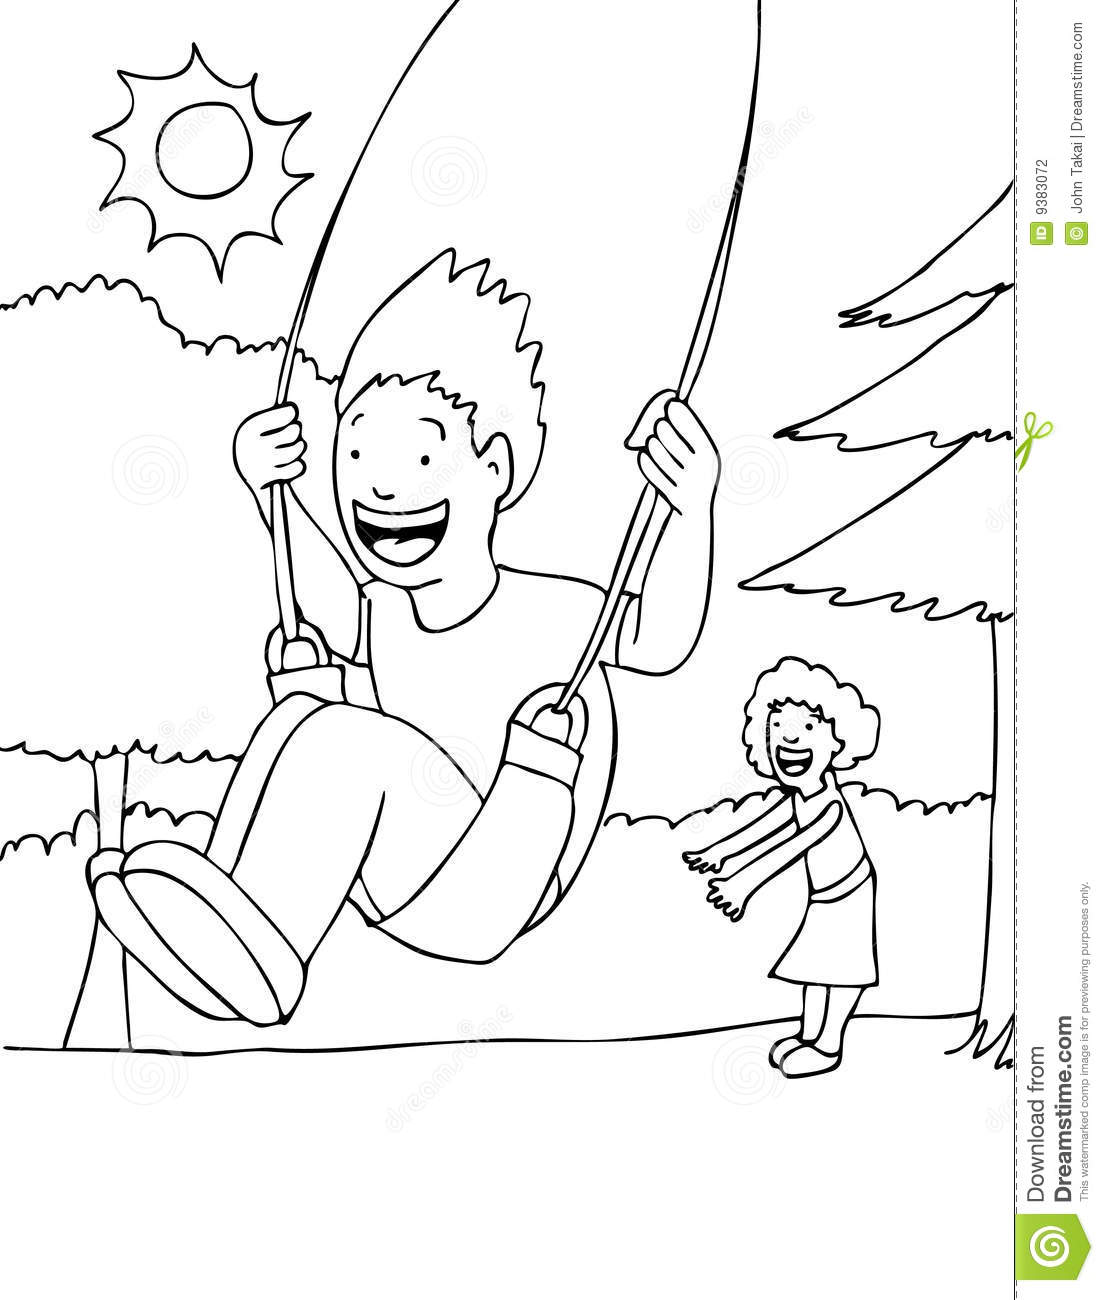 swing set coloring page - park swing black and white stock photography image